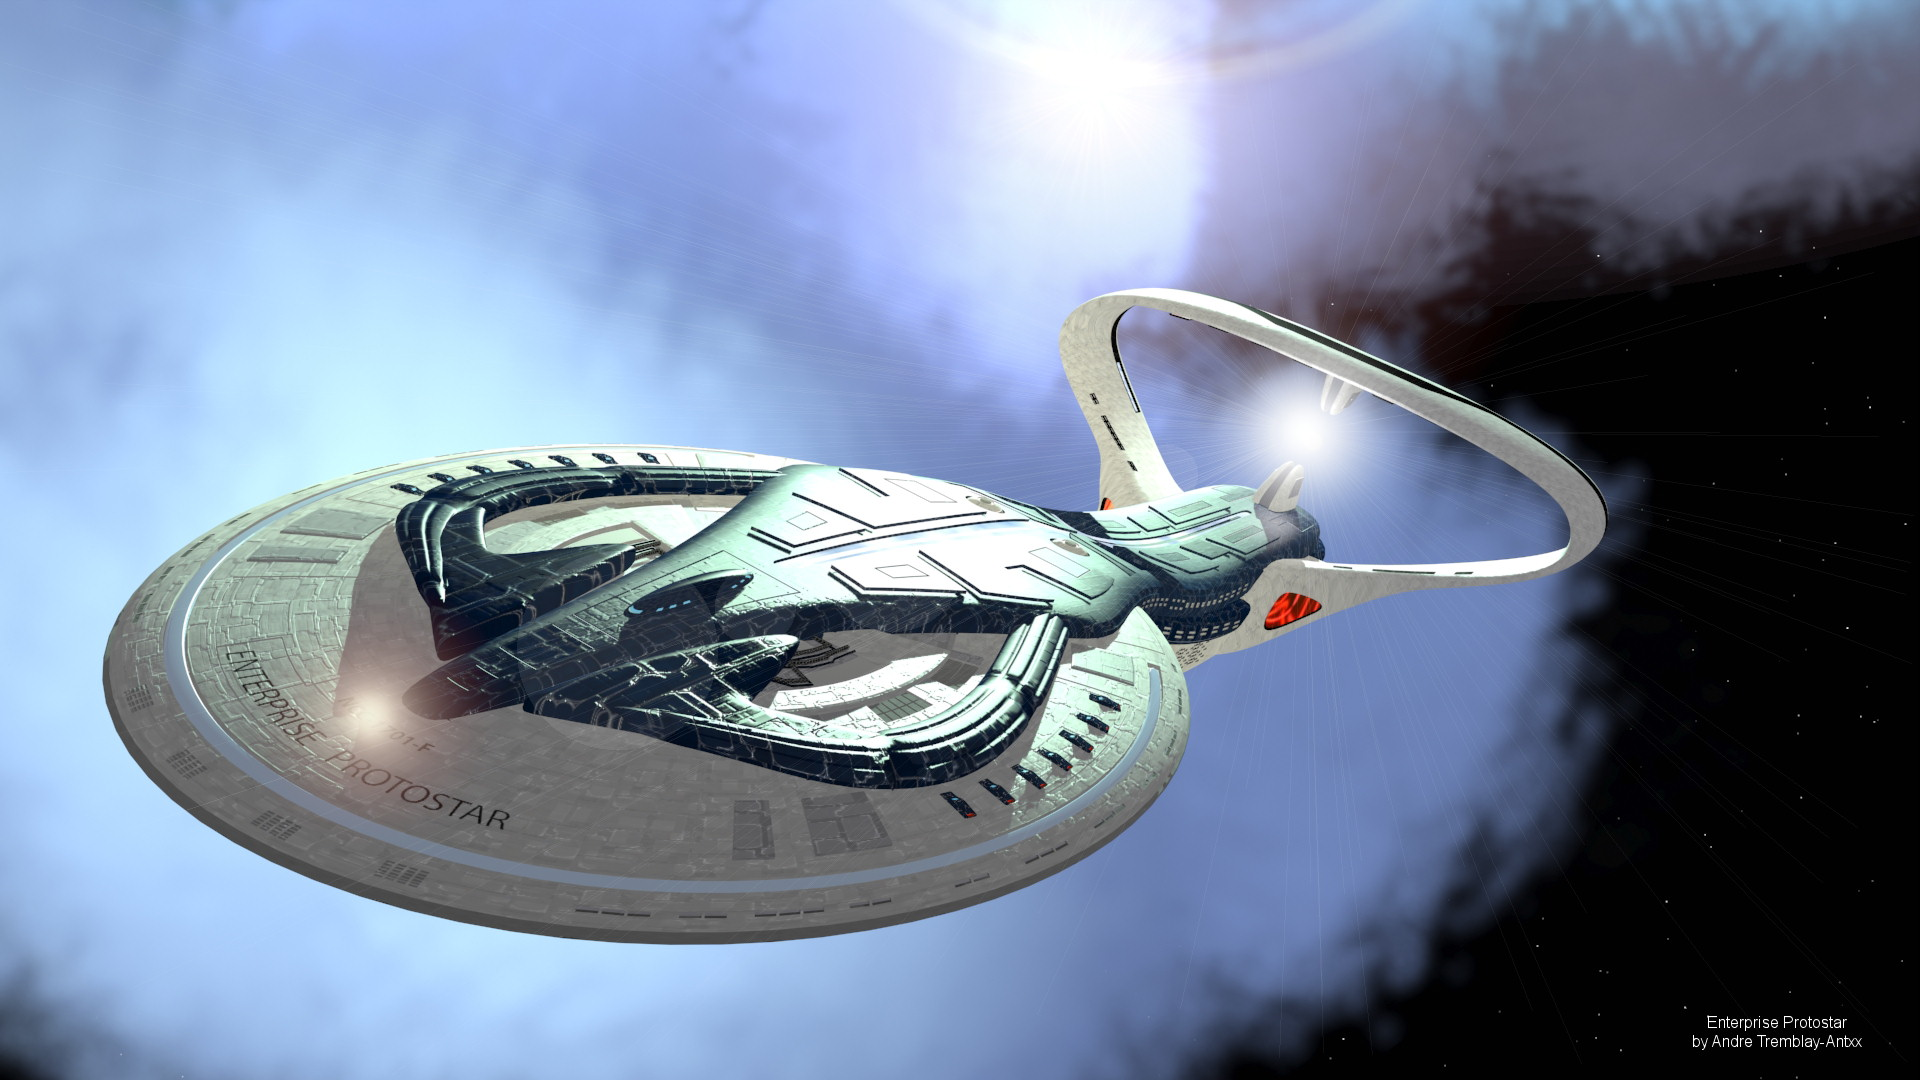 Bien-aimé Star Trek Enterprise Protostar Wallpapers – 3dDub WJ28